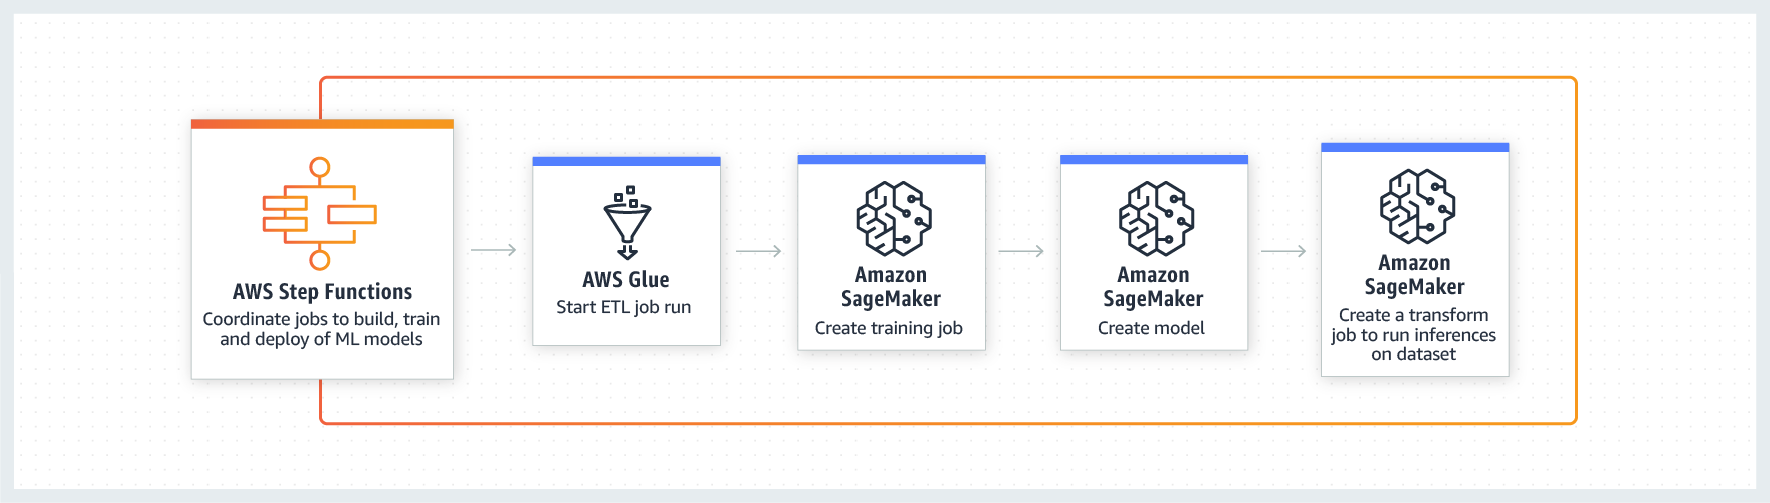 product-page-diagram-aws-step-functions-use-case-amazon-sagemaker